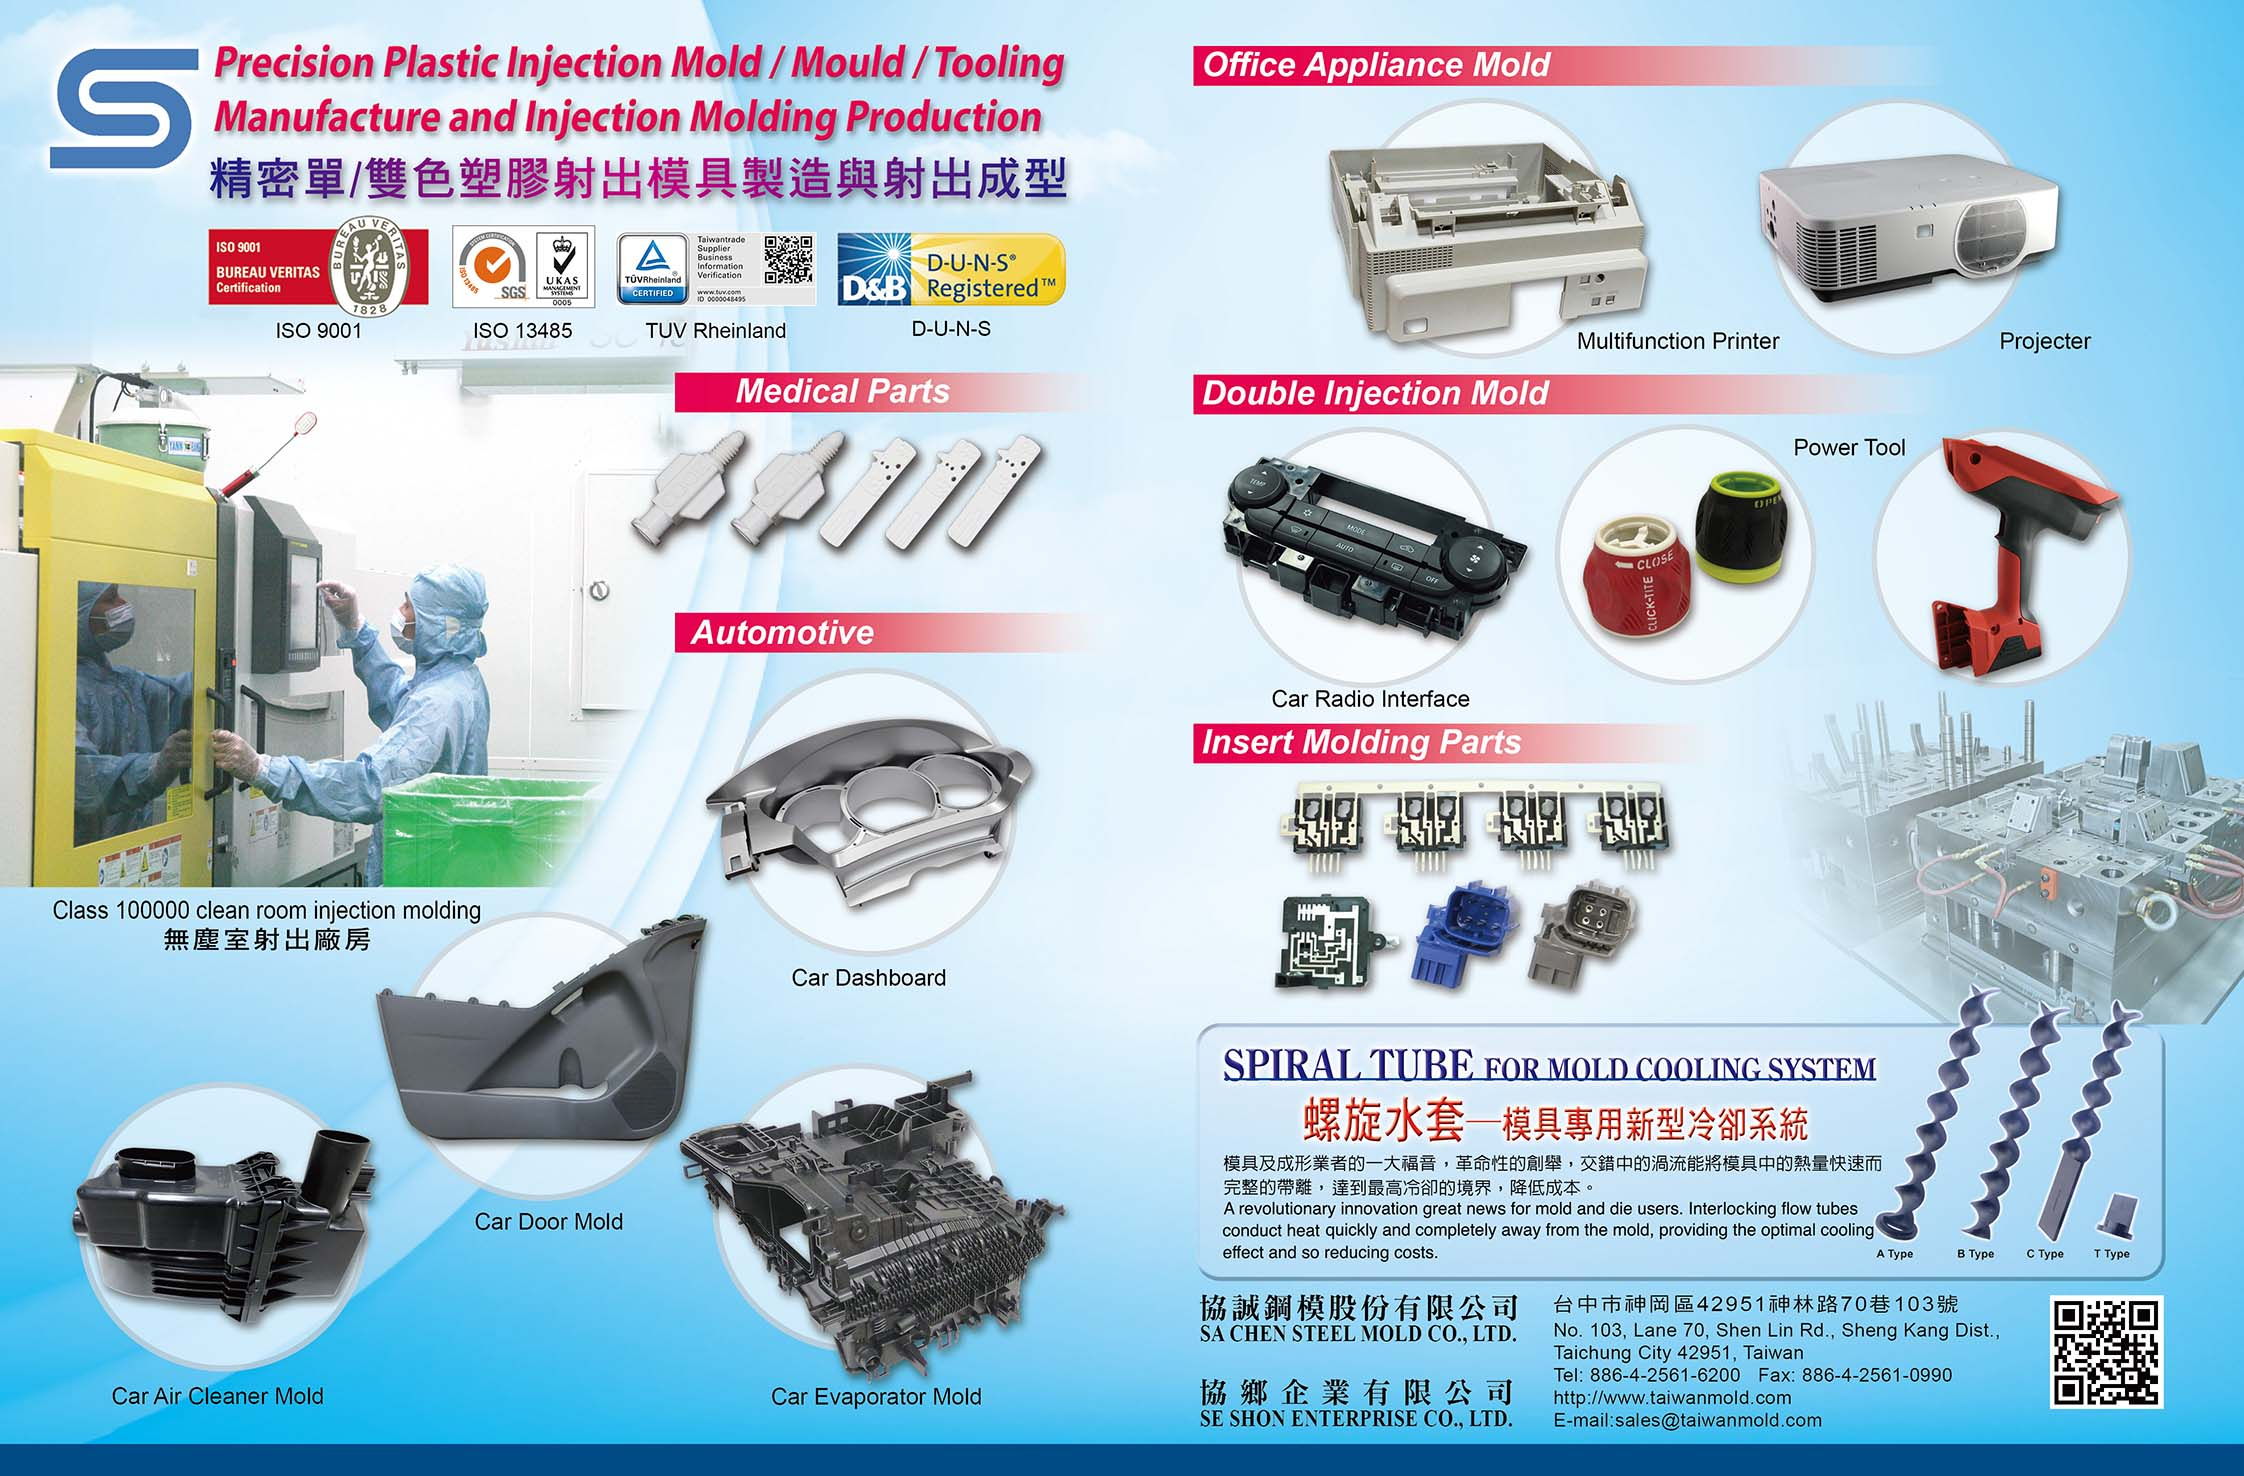 SA CHEN STEEL MOLD CO., LTD.